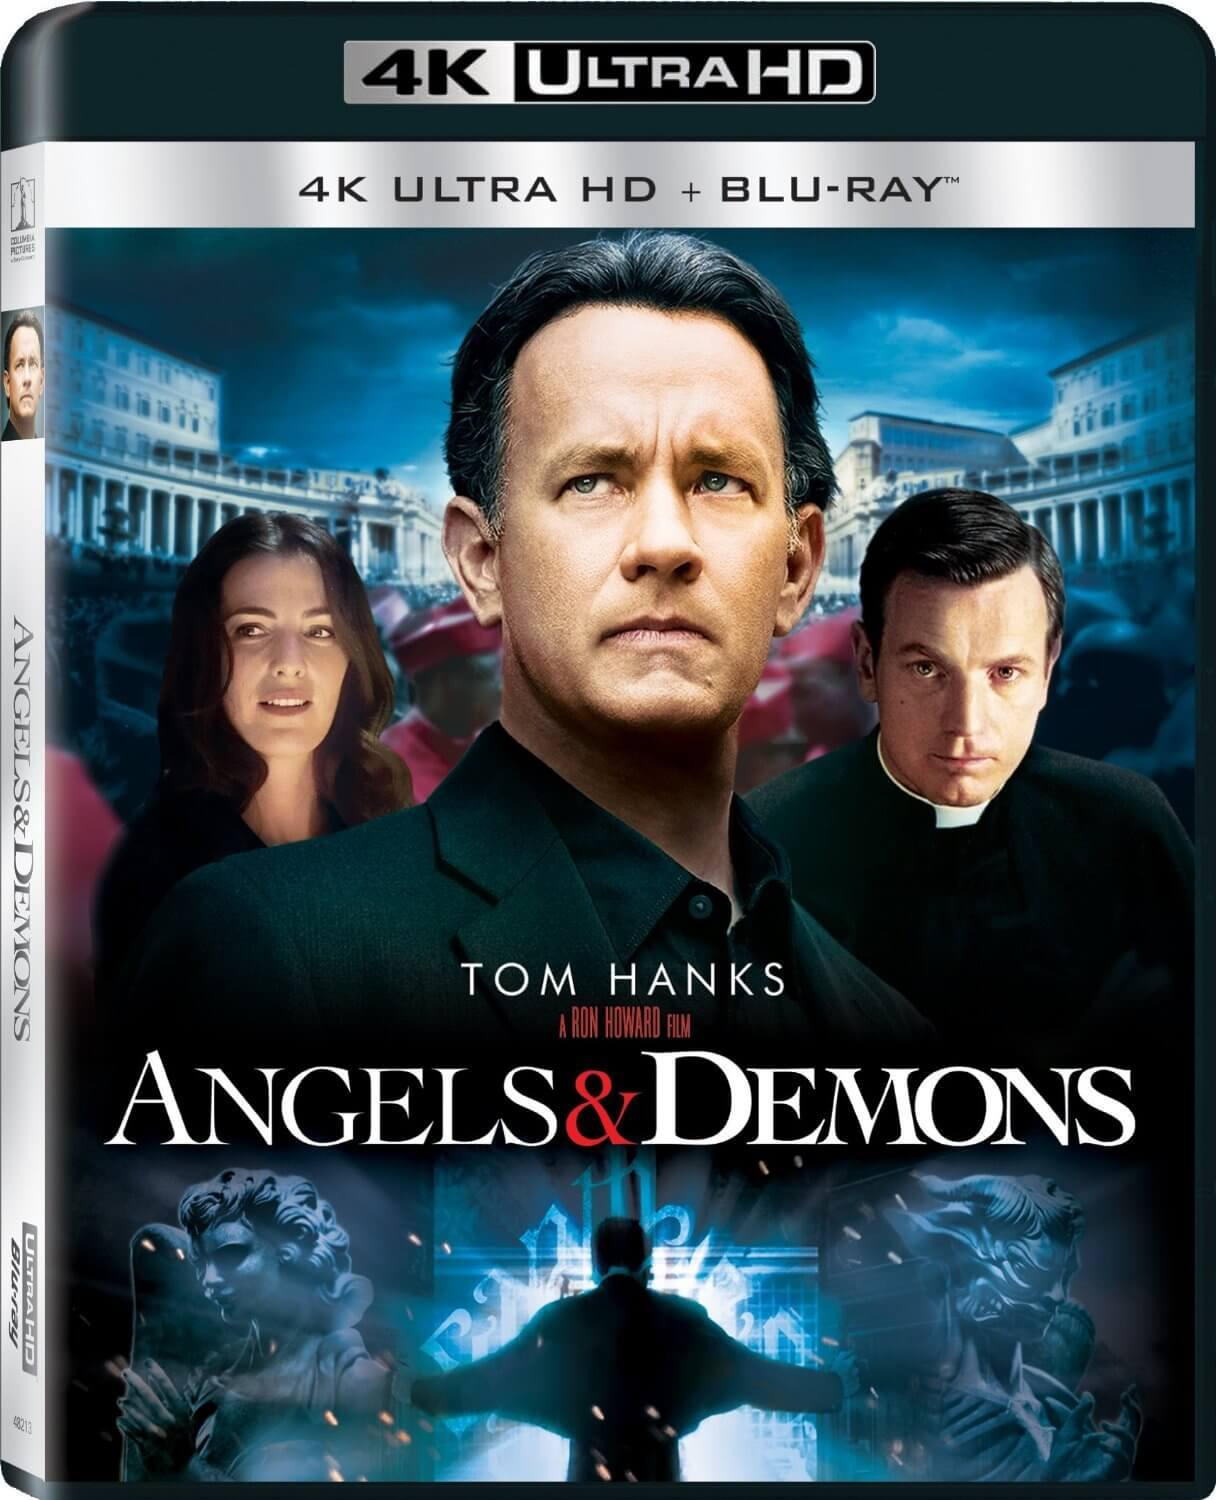 Angels & Demons 4K 2009